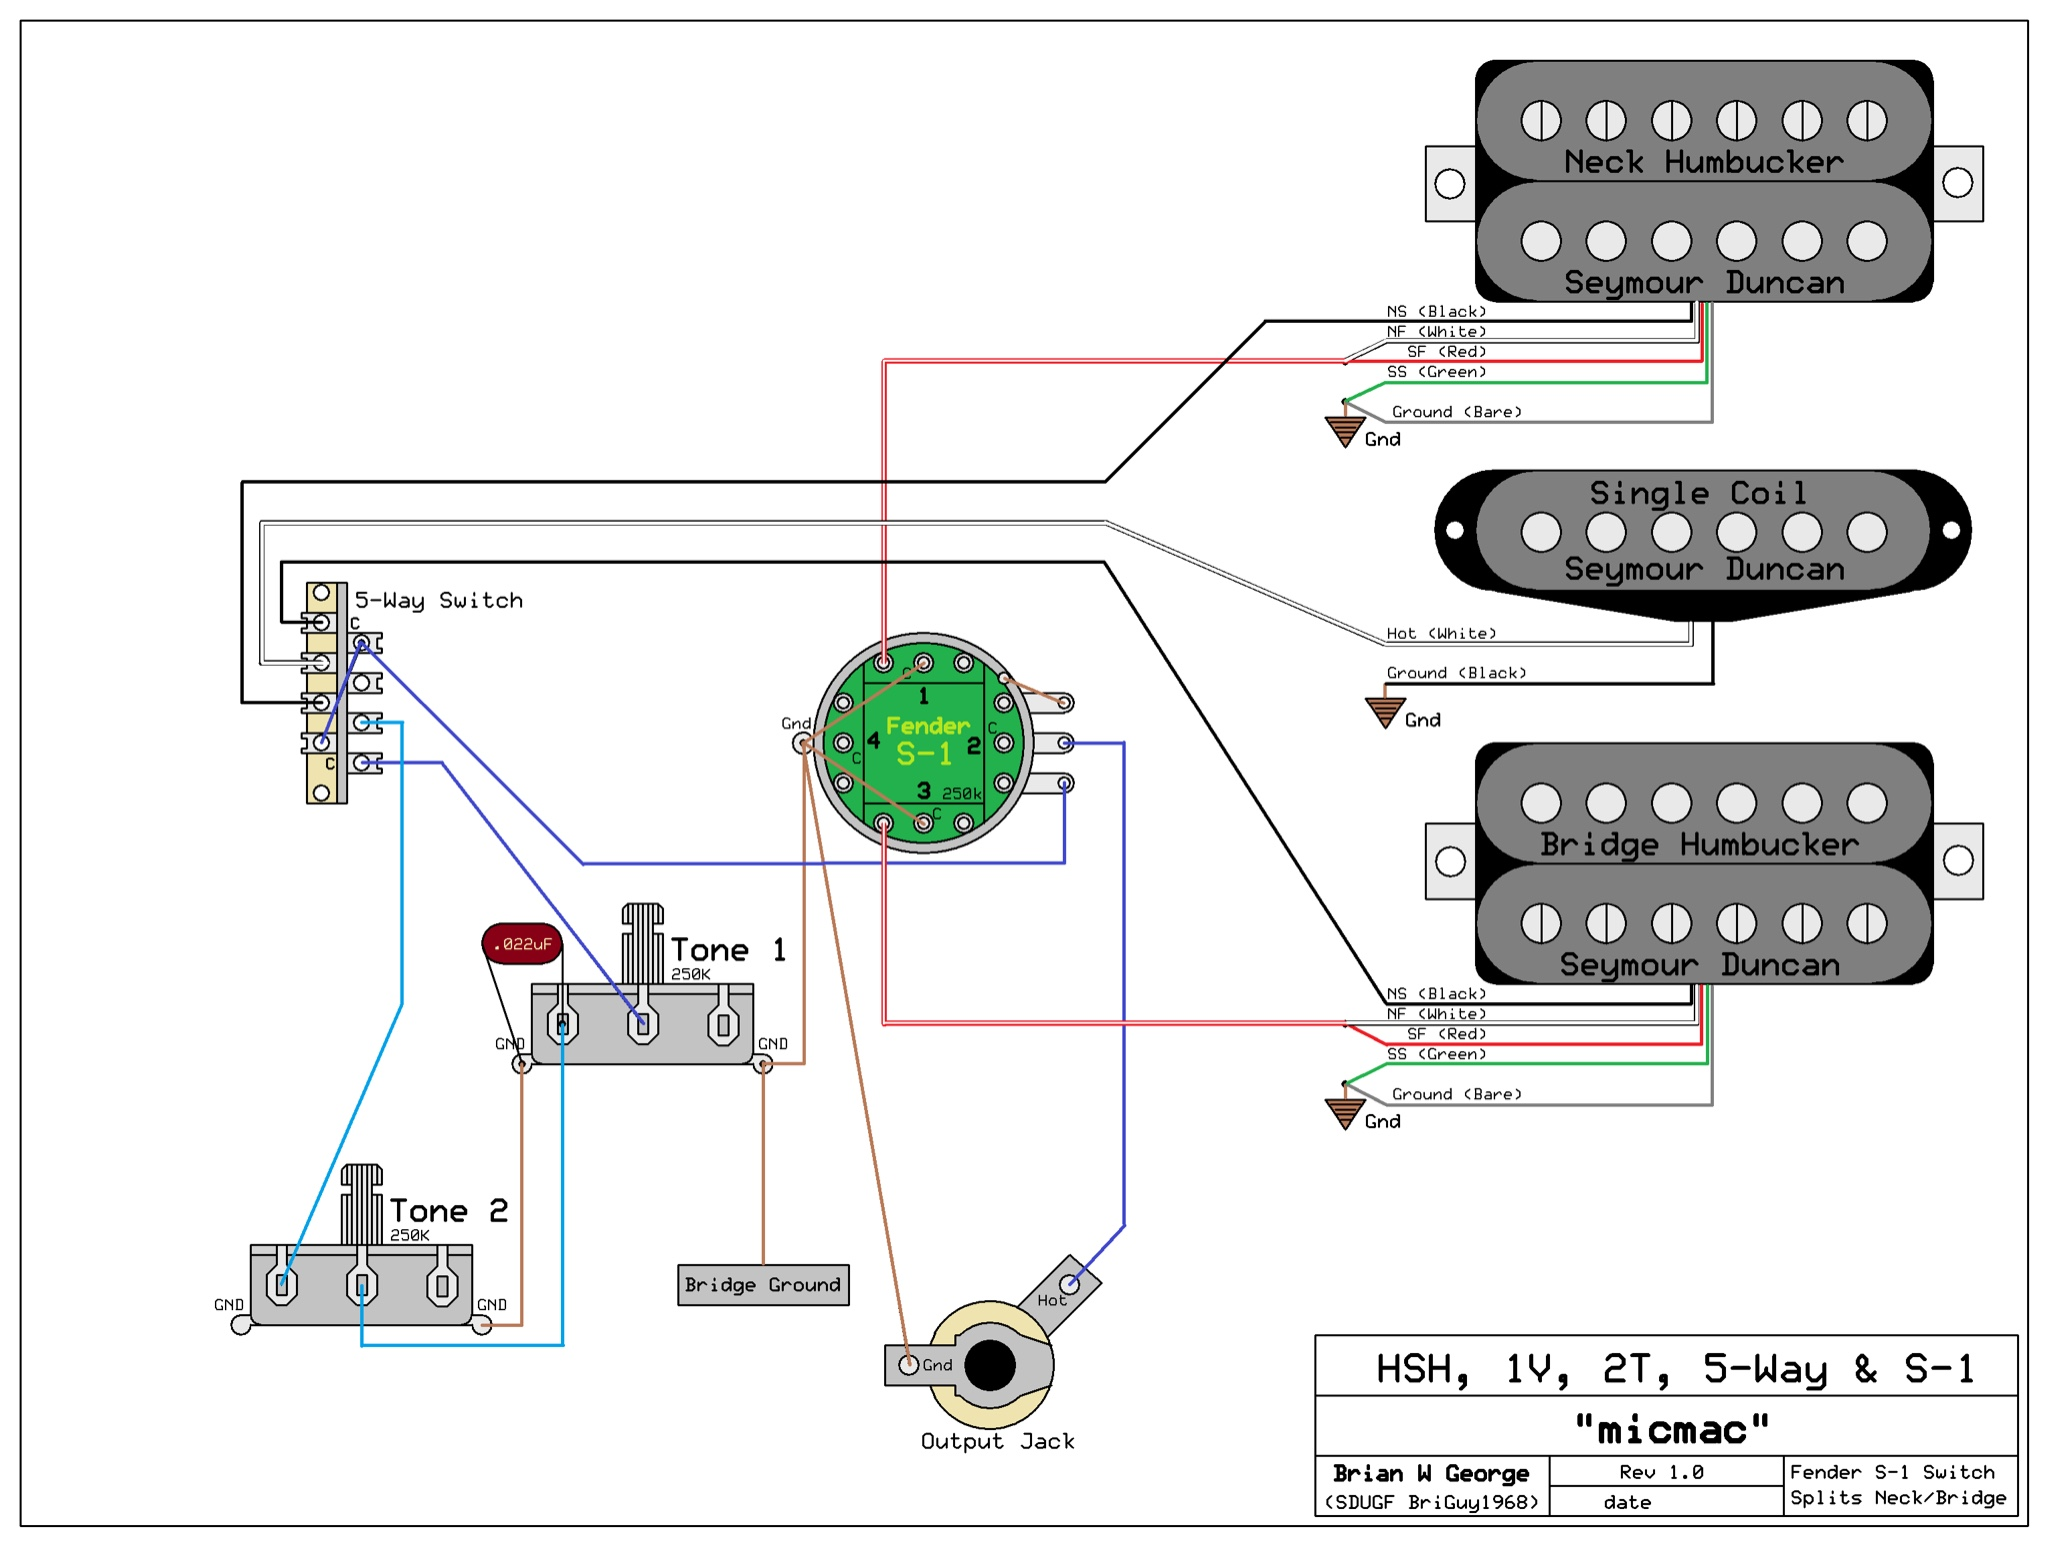 Need Wiring Diagram For An Hsh 1 Volume 2 Tone S 1 Switch For Volume